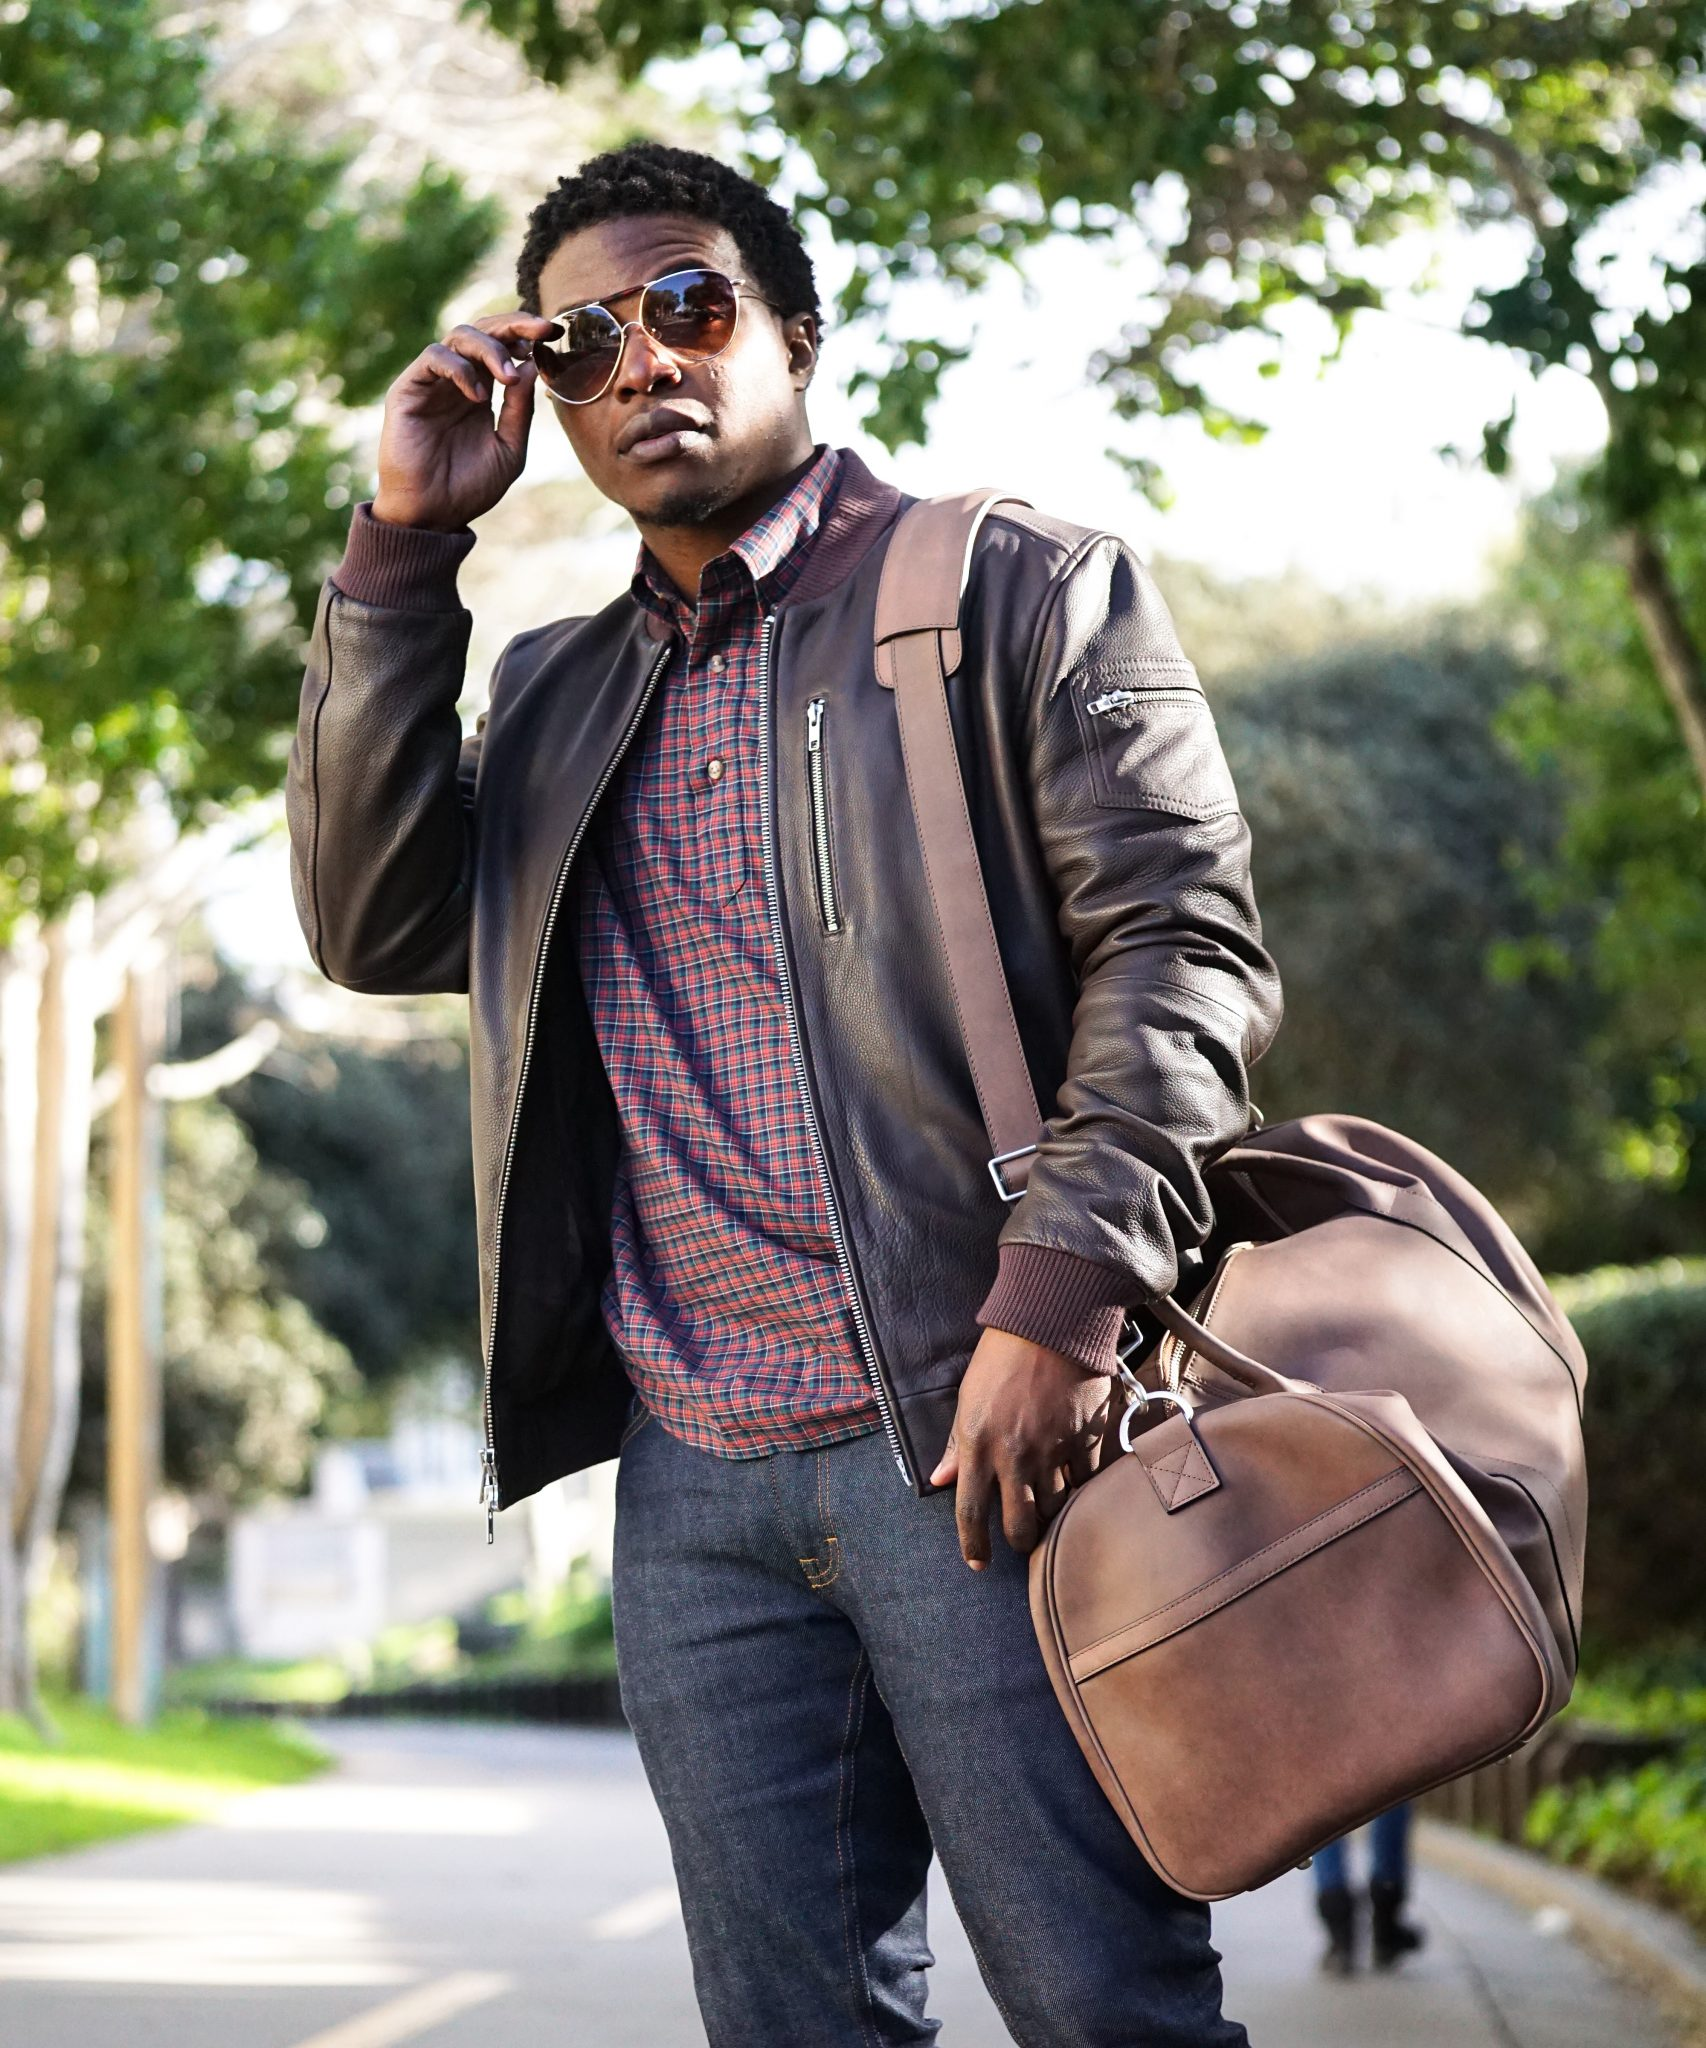 dapper-advisor-black-man-wearing-brown-leather-bomber-jacket-holding-brown-leather duffle bag-1